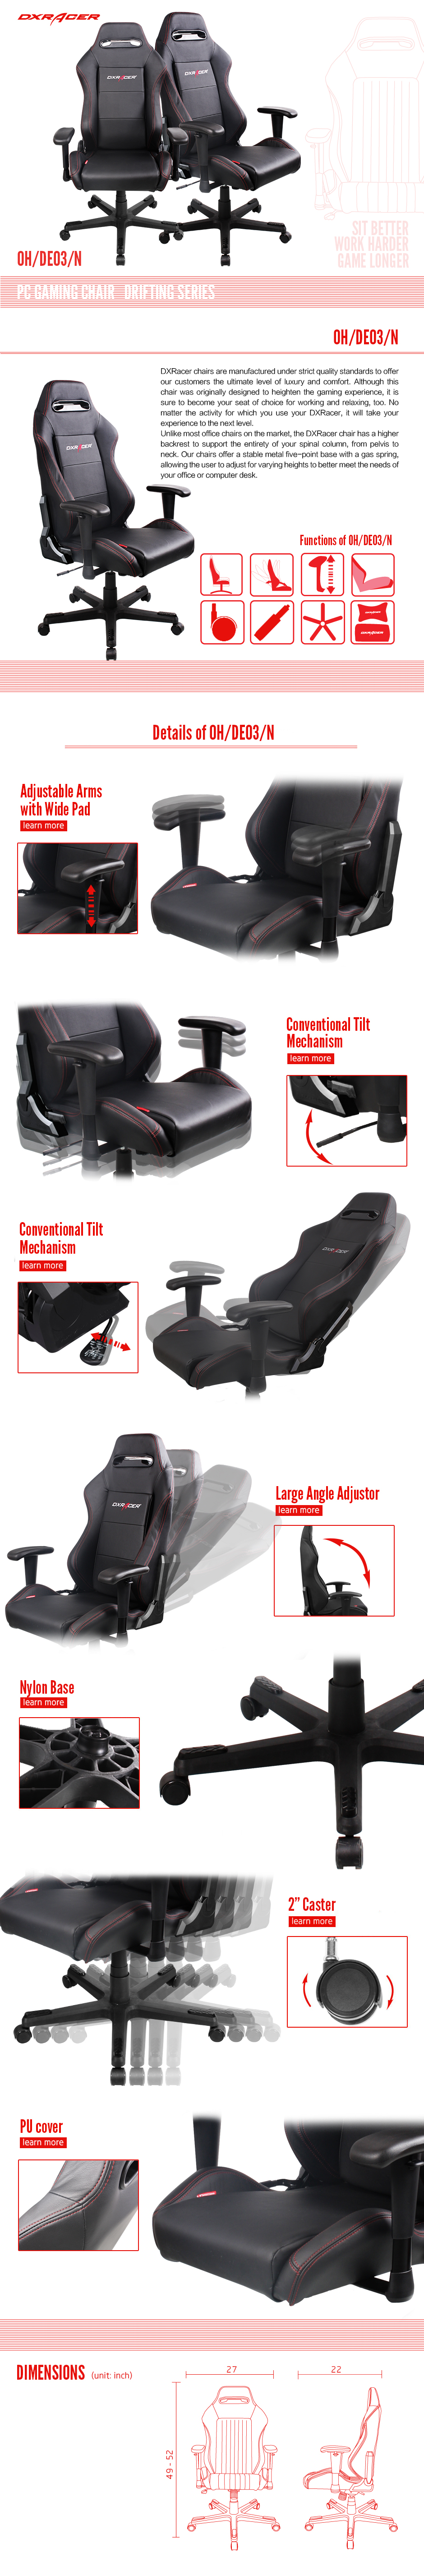 dxracer office chairs de03  n pc game chair racing seats Movable Office Workstations movable office furniture manufacturer